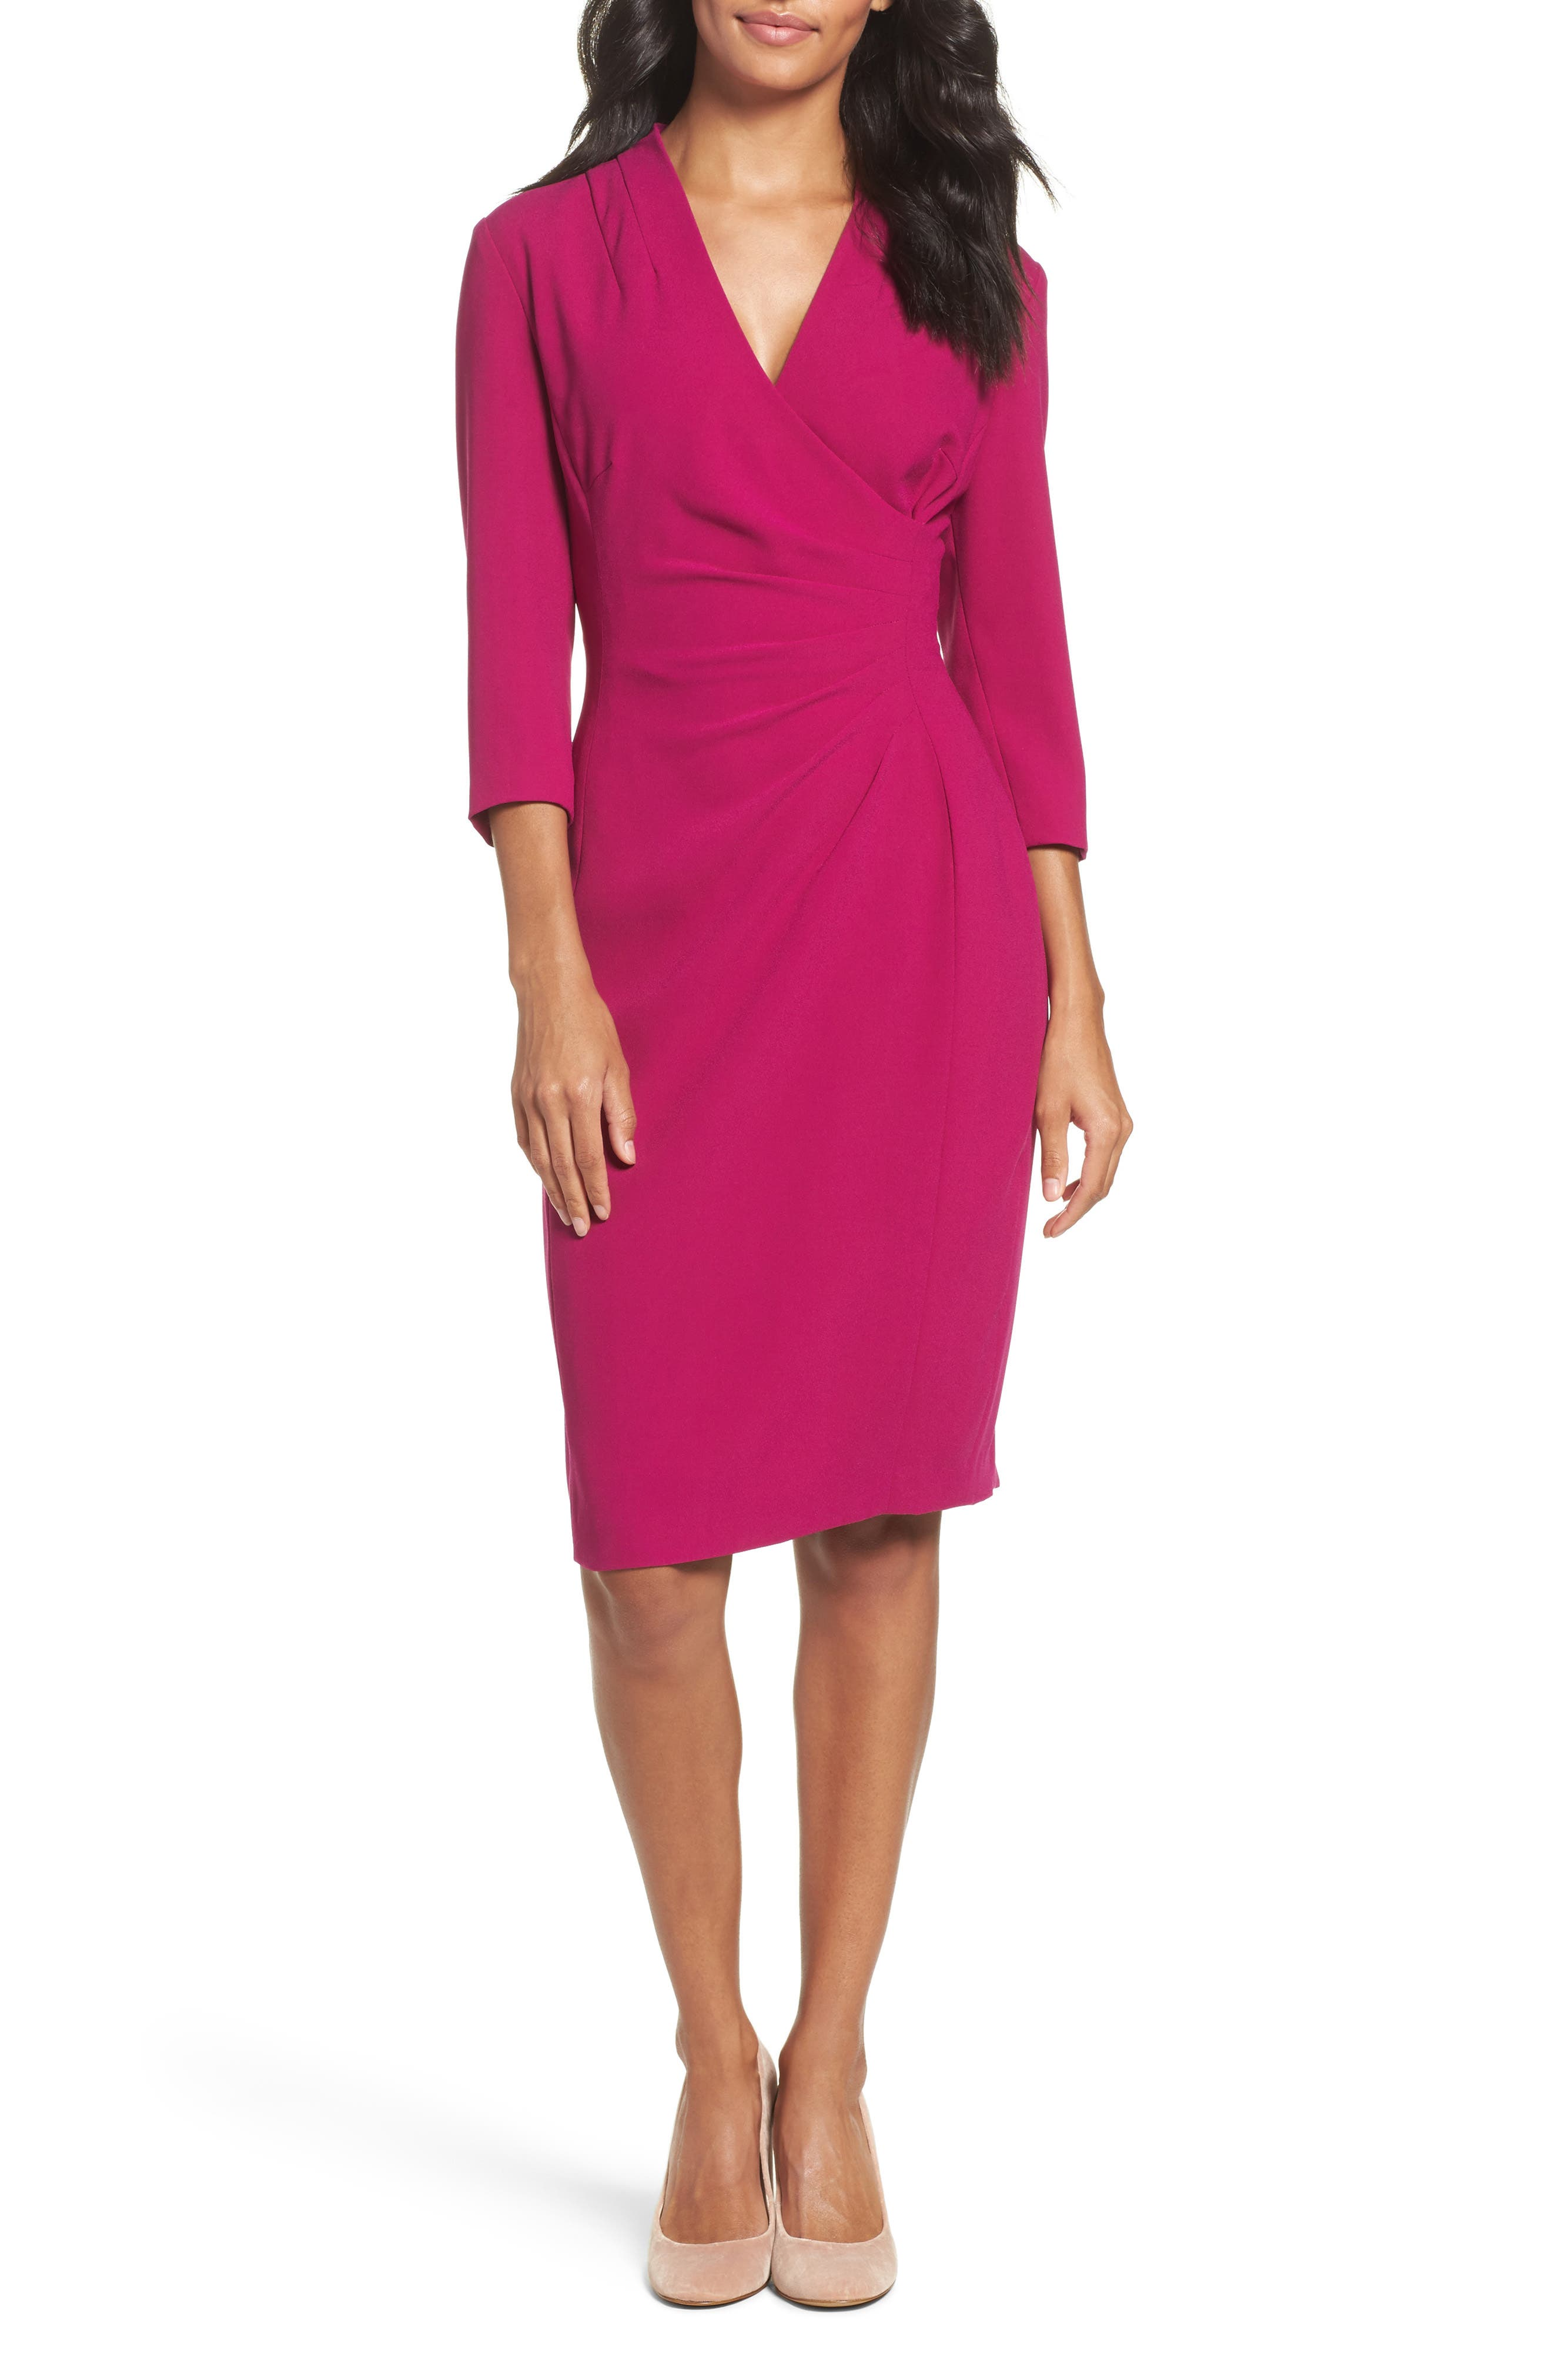 Tahari Crepe Sheath Dress (Regular & Petite)